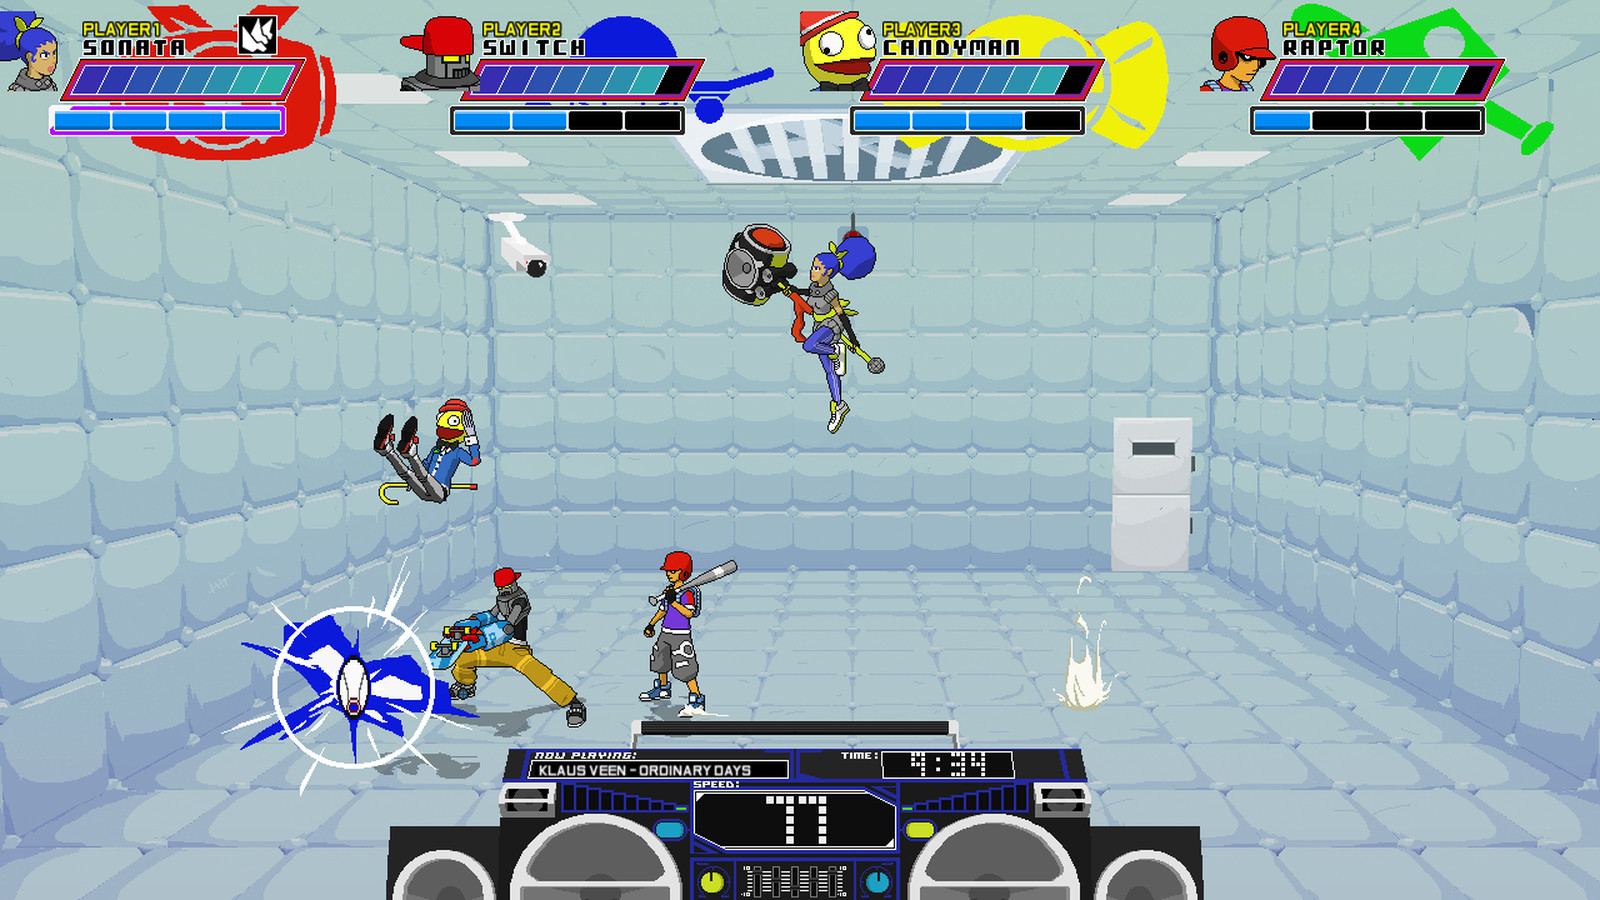 Lethal League coming to PS4, Xbox One in May